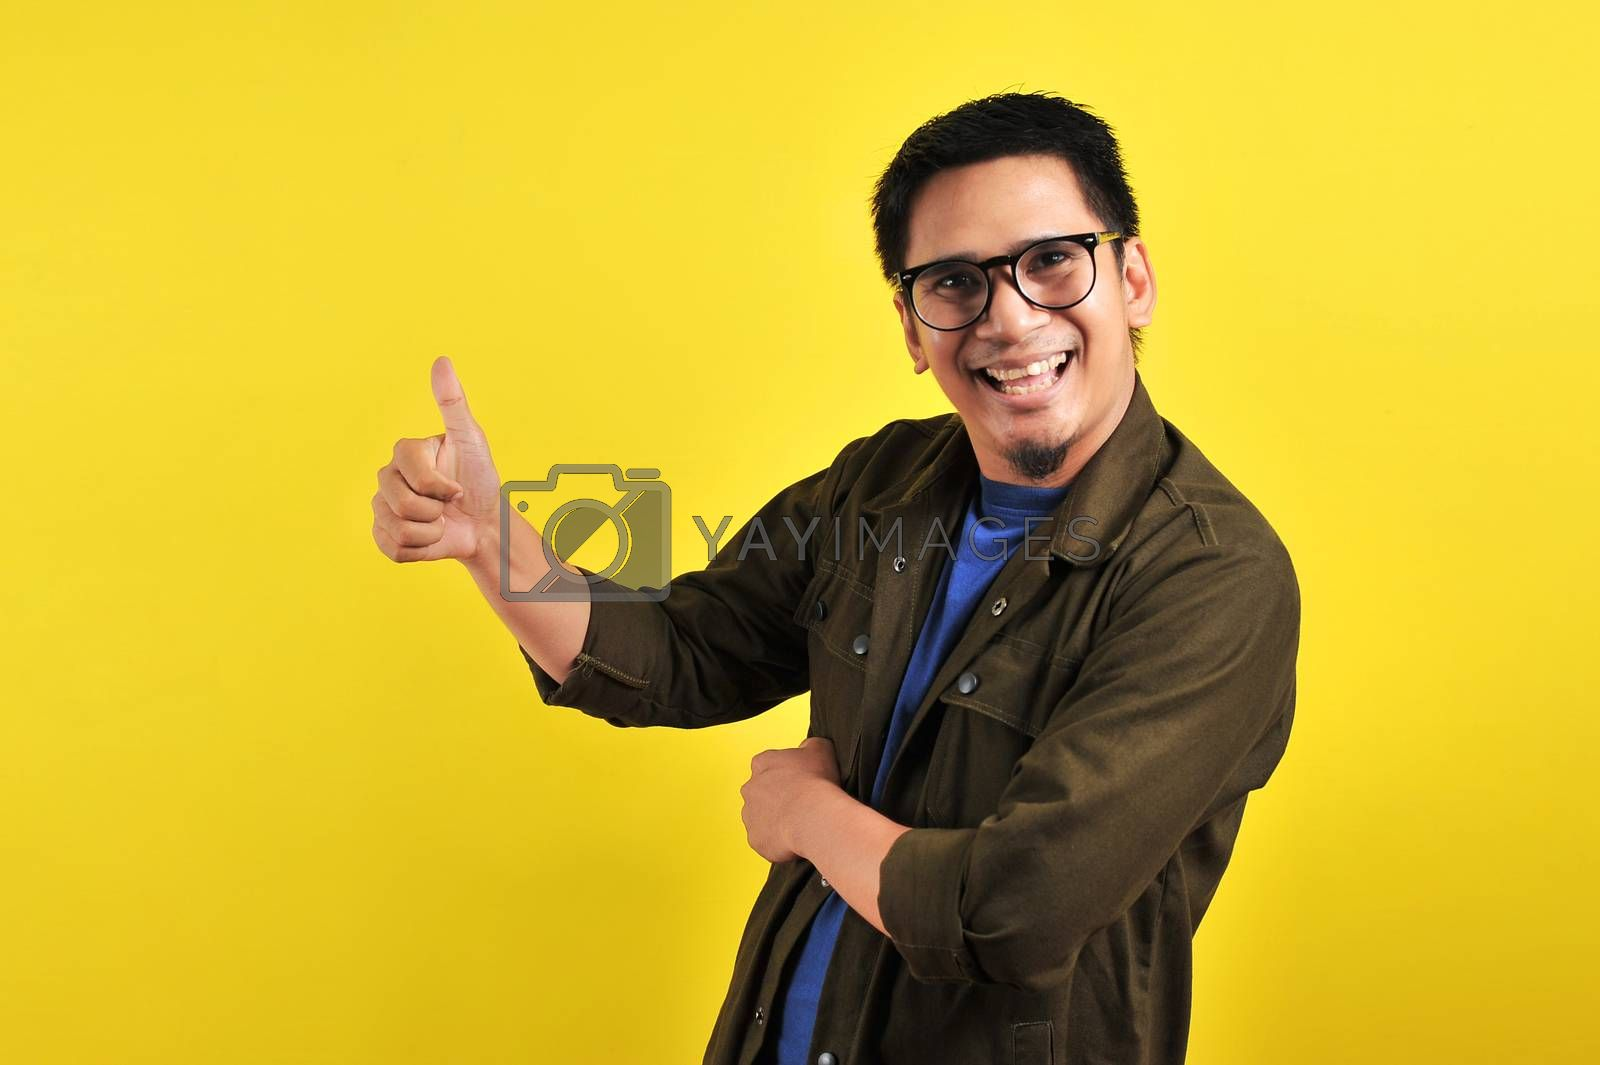 Happy of young Asian man smiling and giving thumbs up, copy space, isolated on yellow background